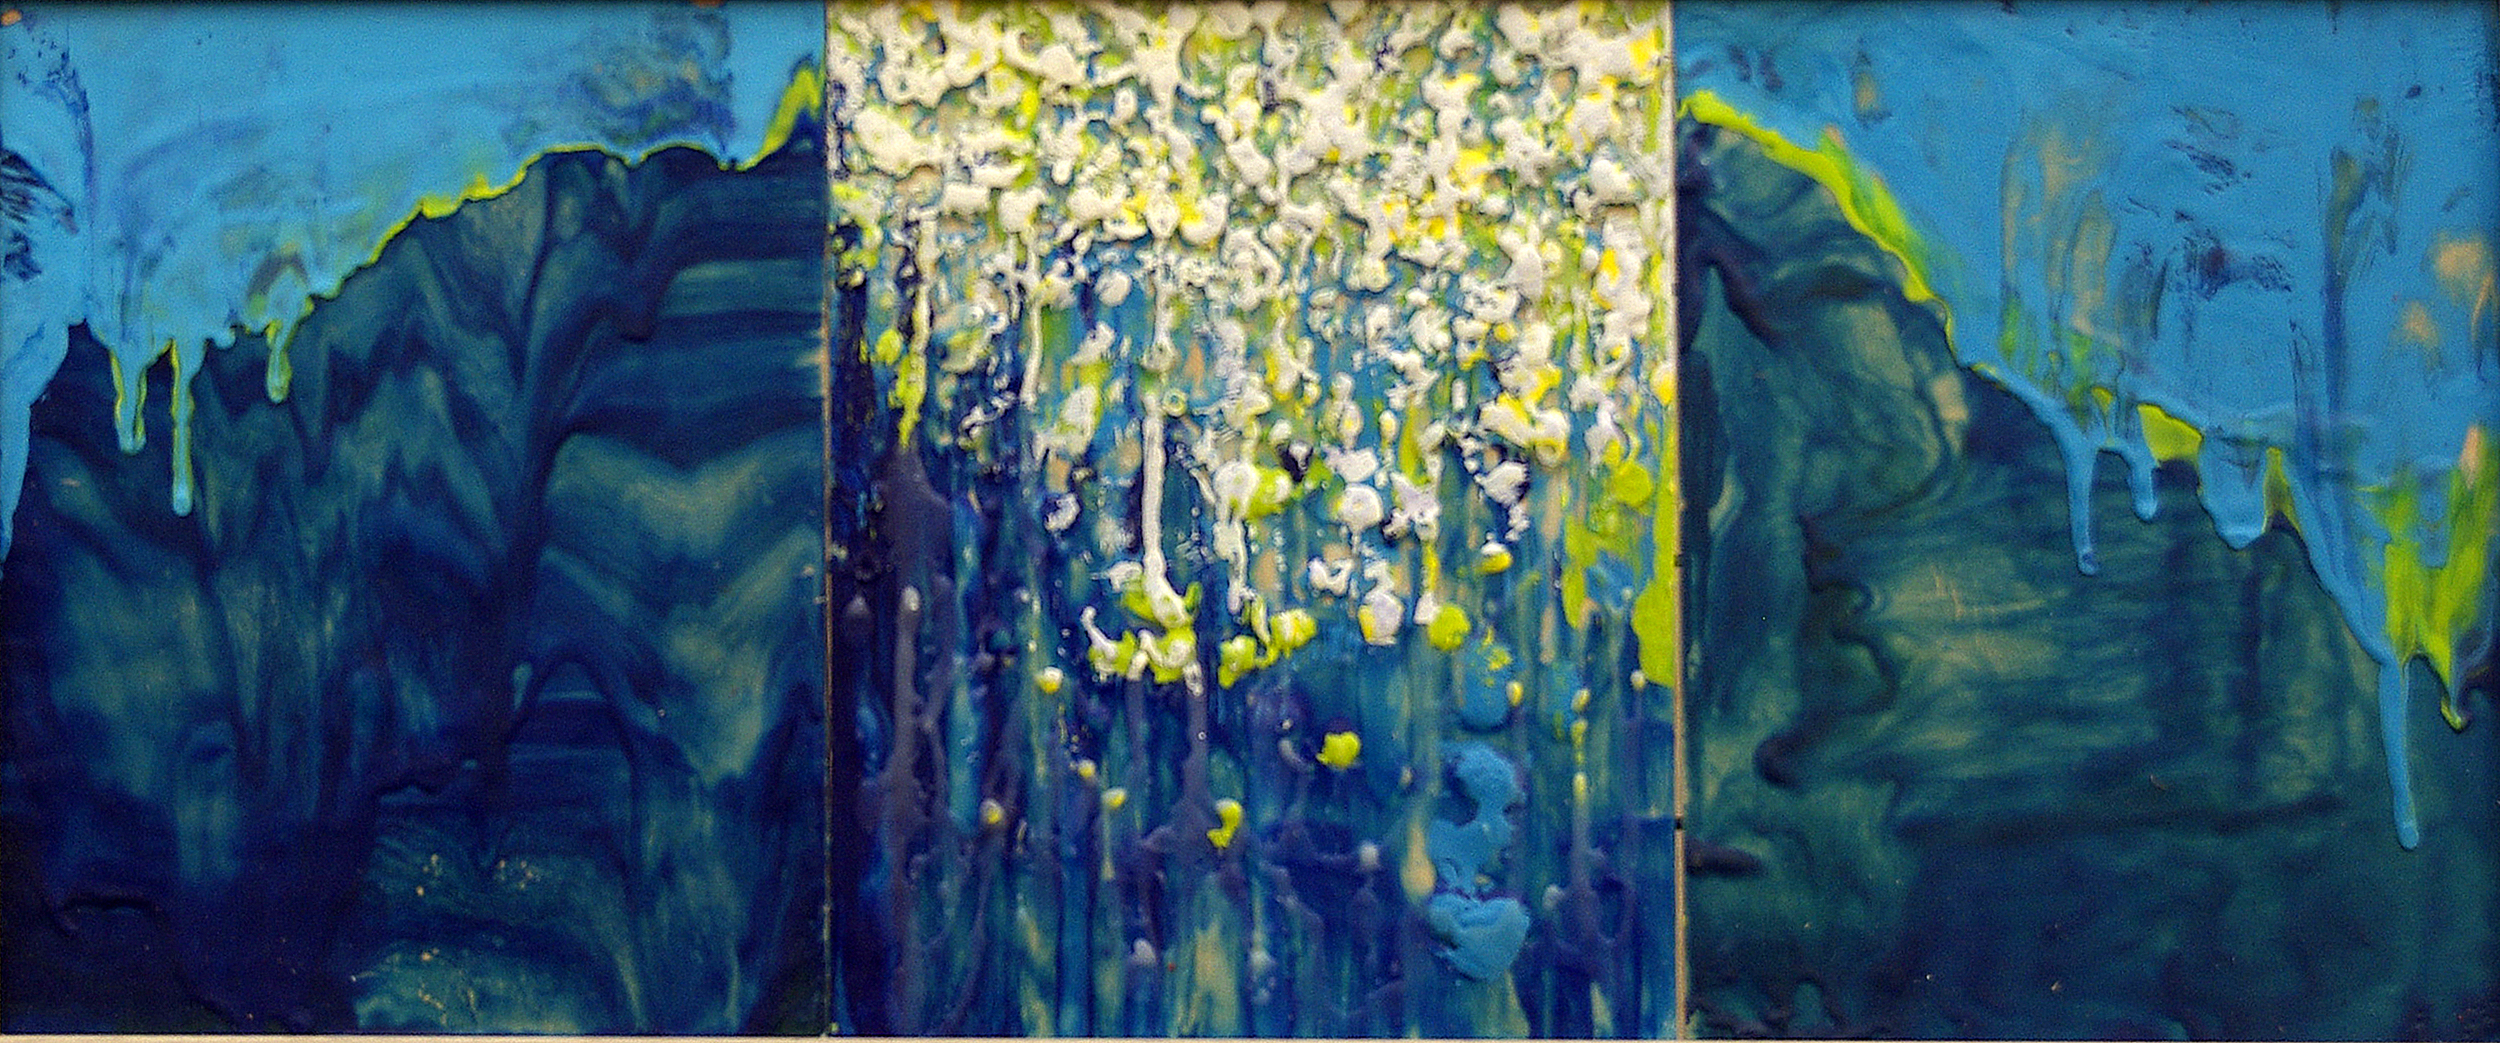 Turquoise and Yellow Rain Triptych